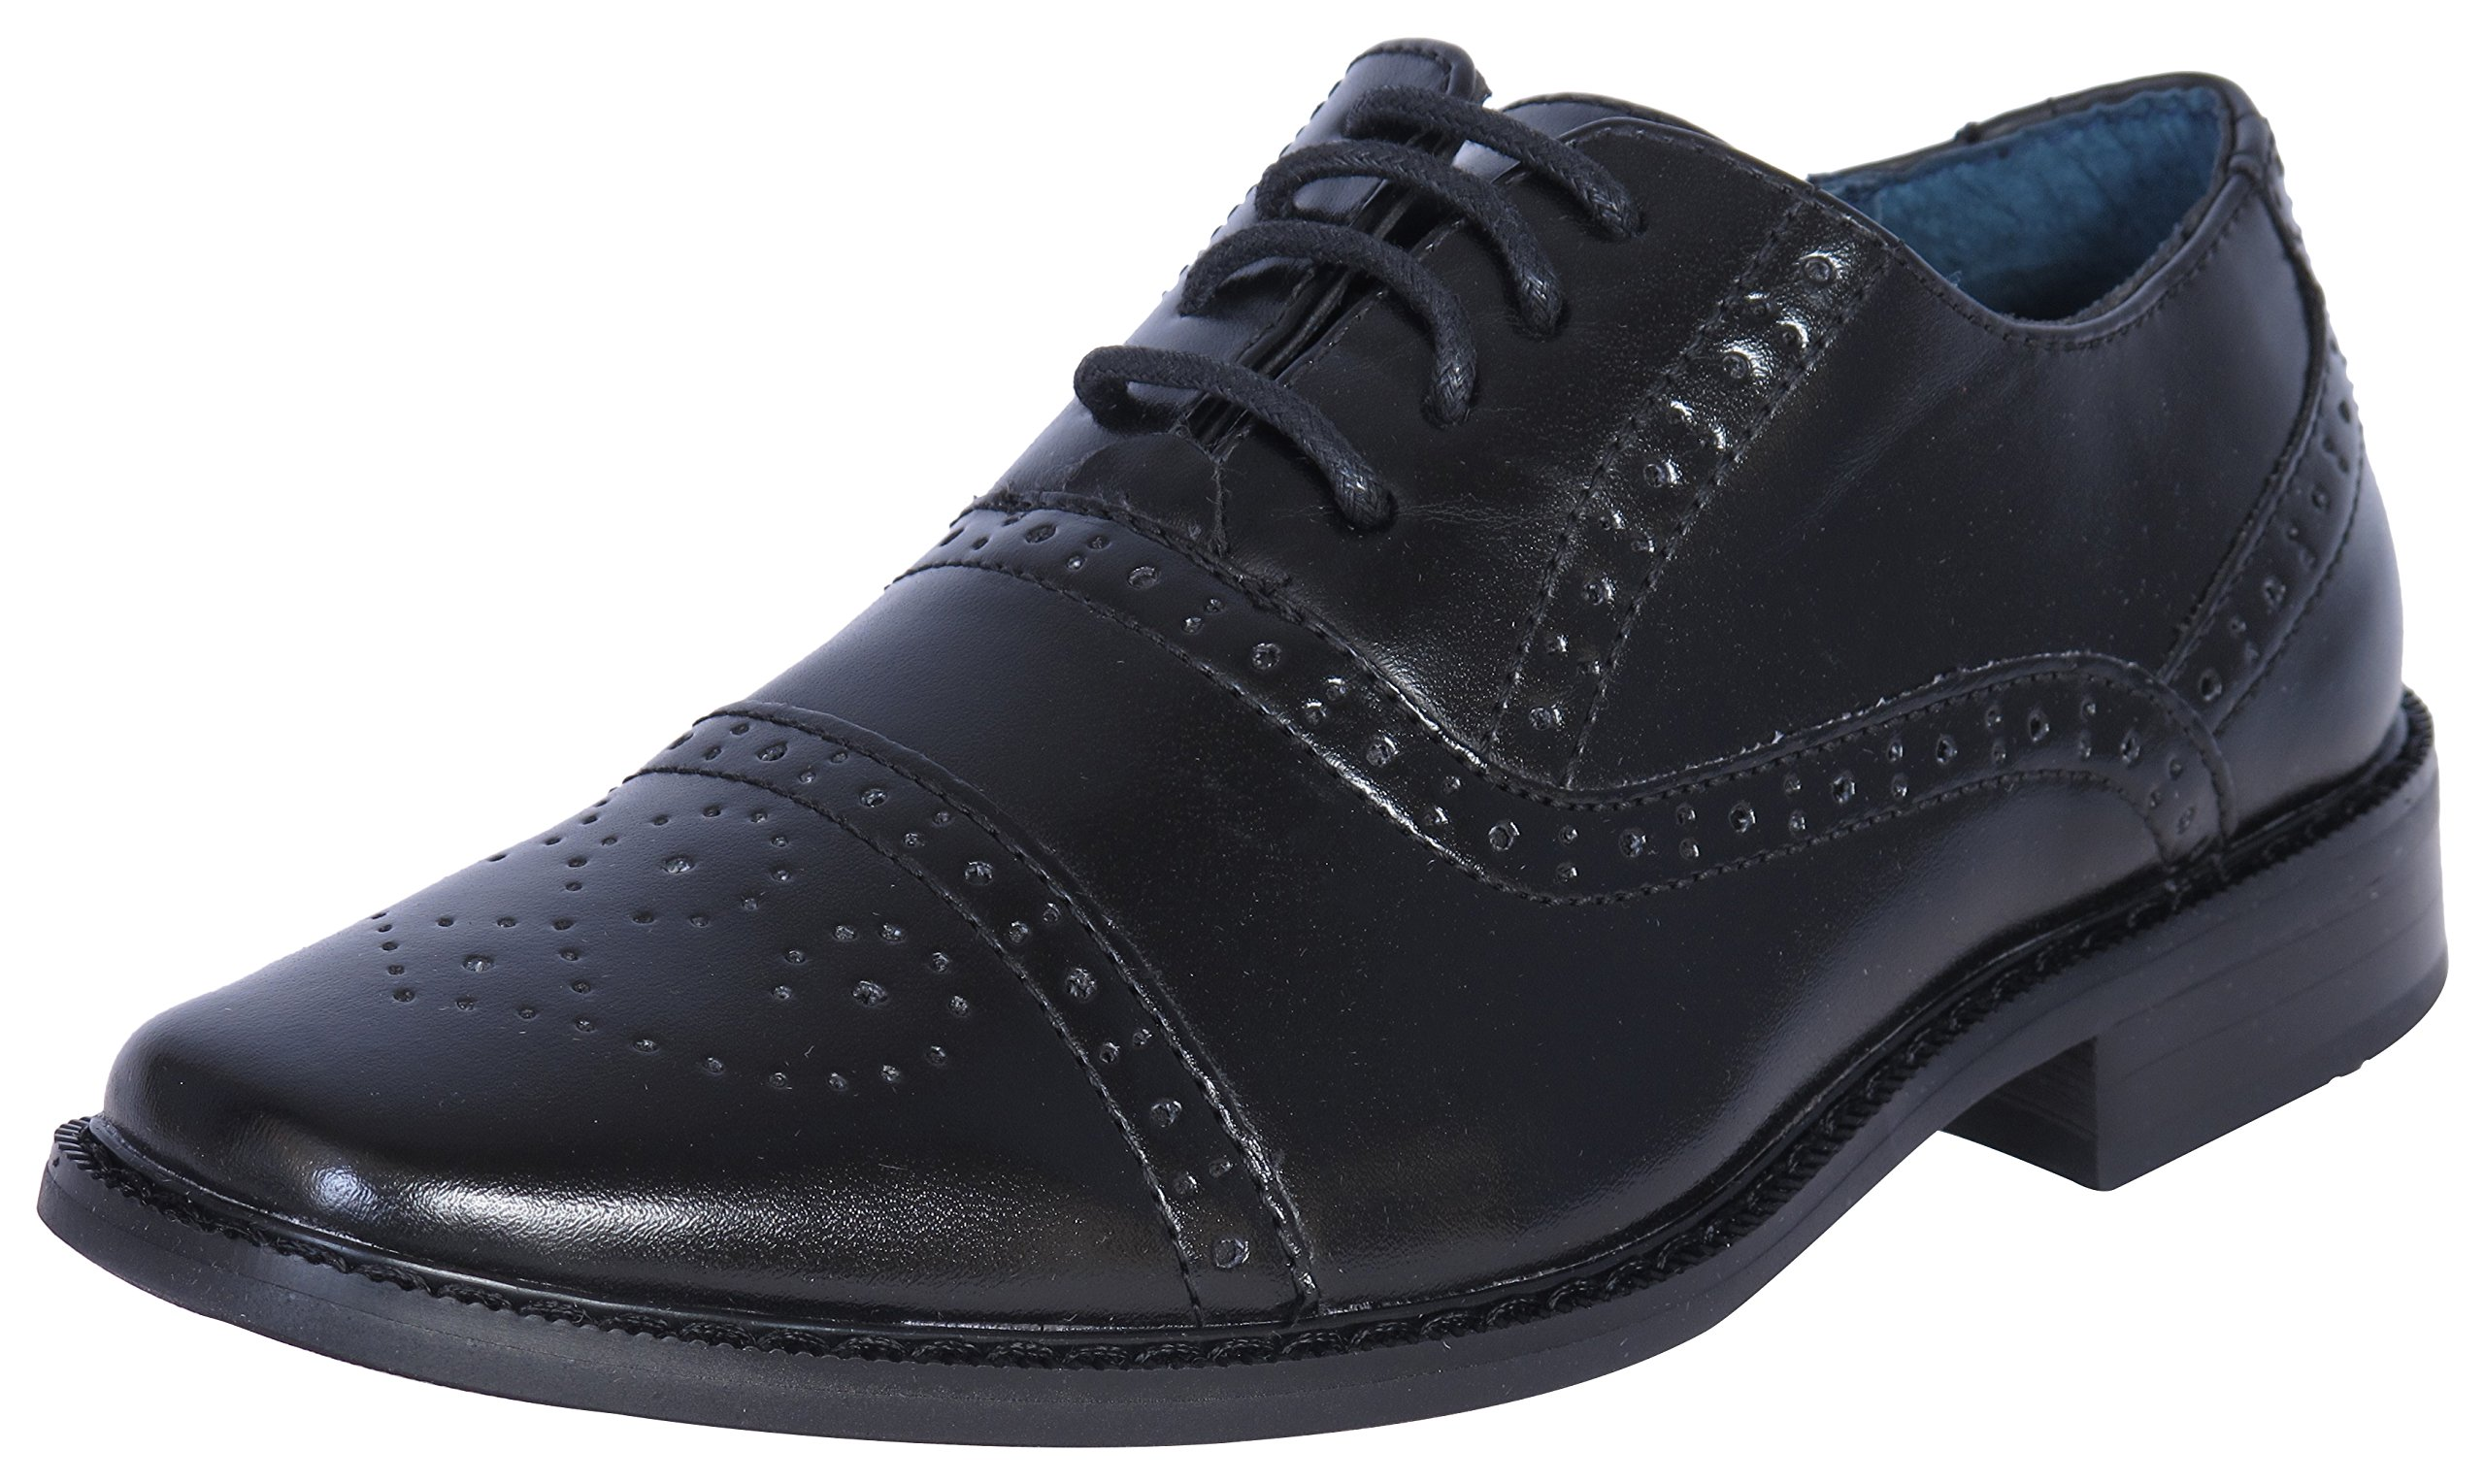 Clothes Boys Dress Shoe